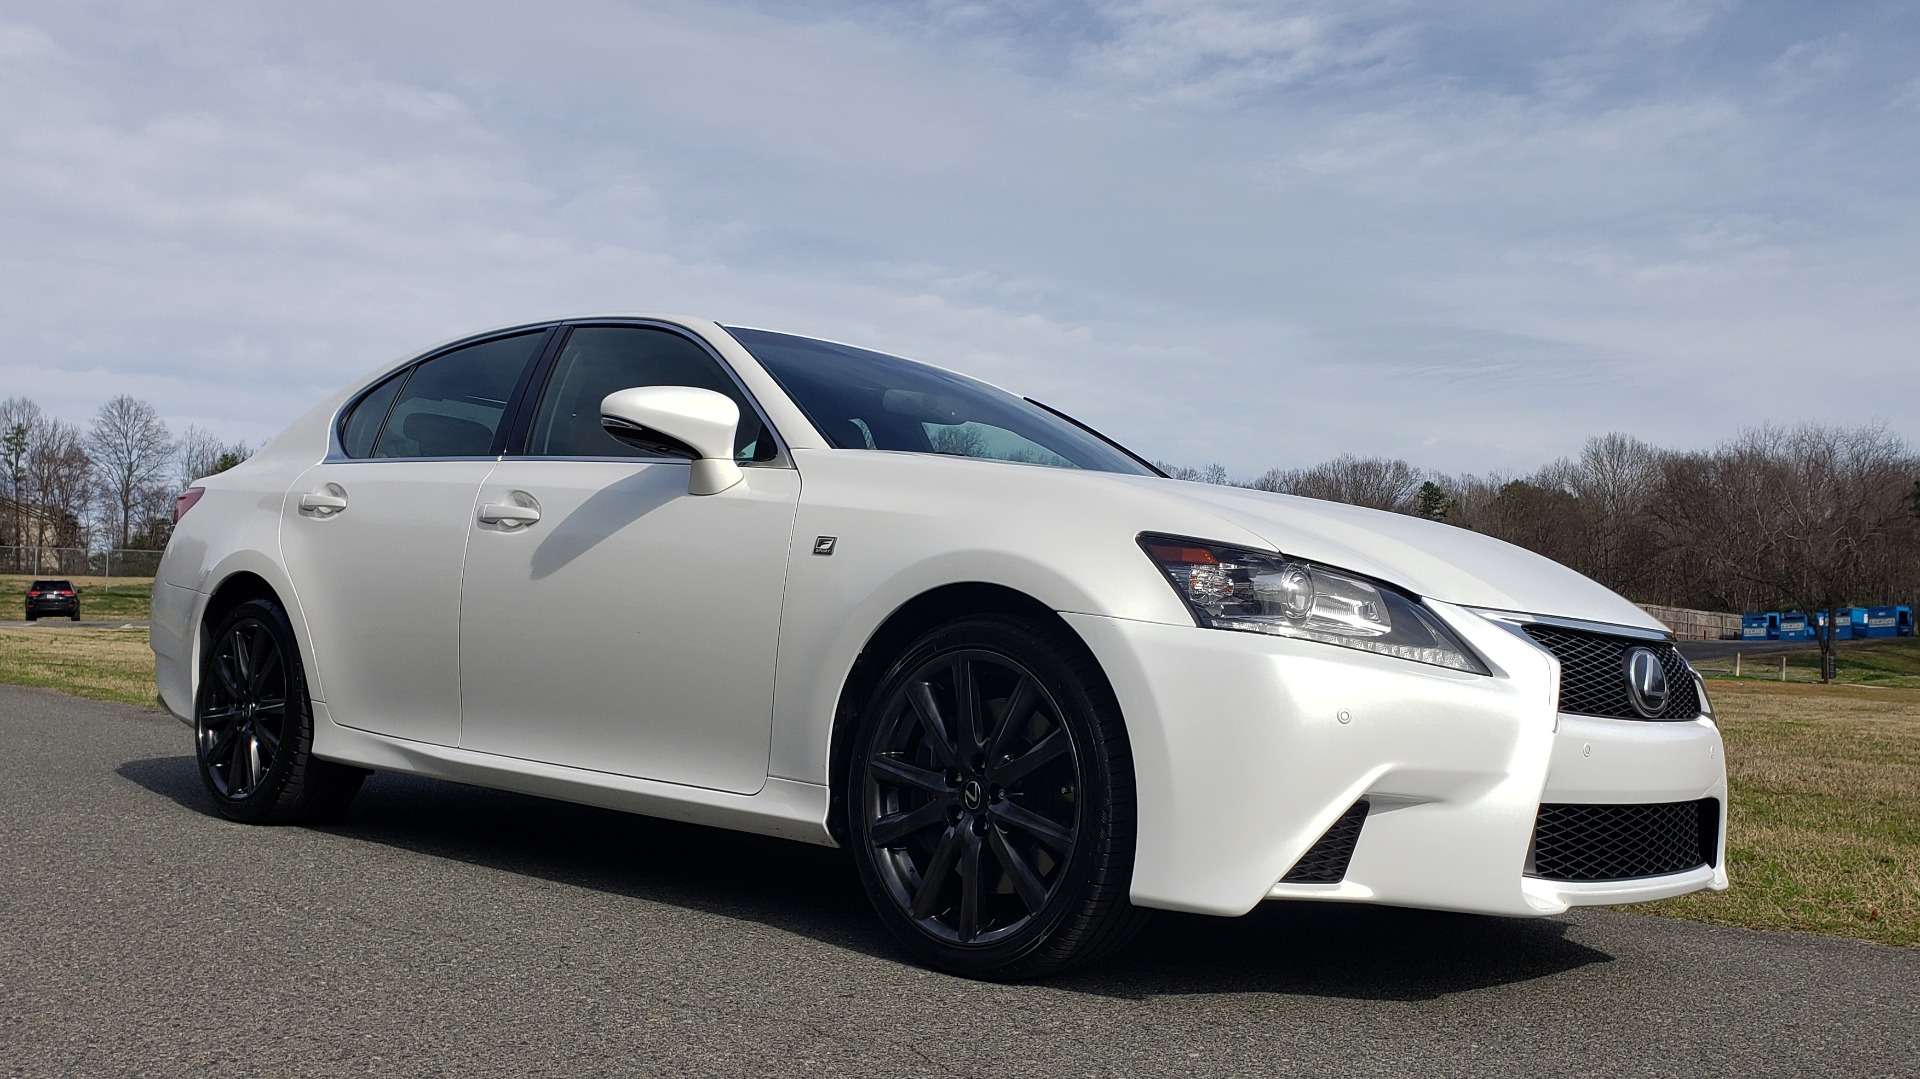 Used 2013 Lexus GS 350 F-SPORT / NAV / SUNROOF / BSM / PRK ASST / REARVIEW for sale Sold at Formula Imports in Charlotte NC 28227 8